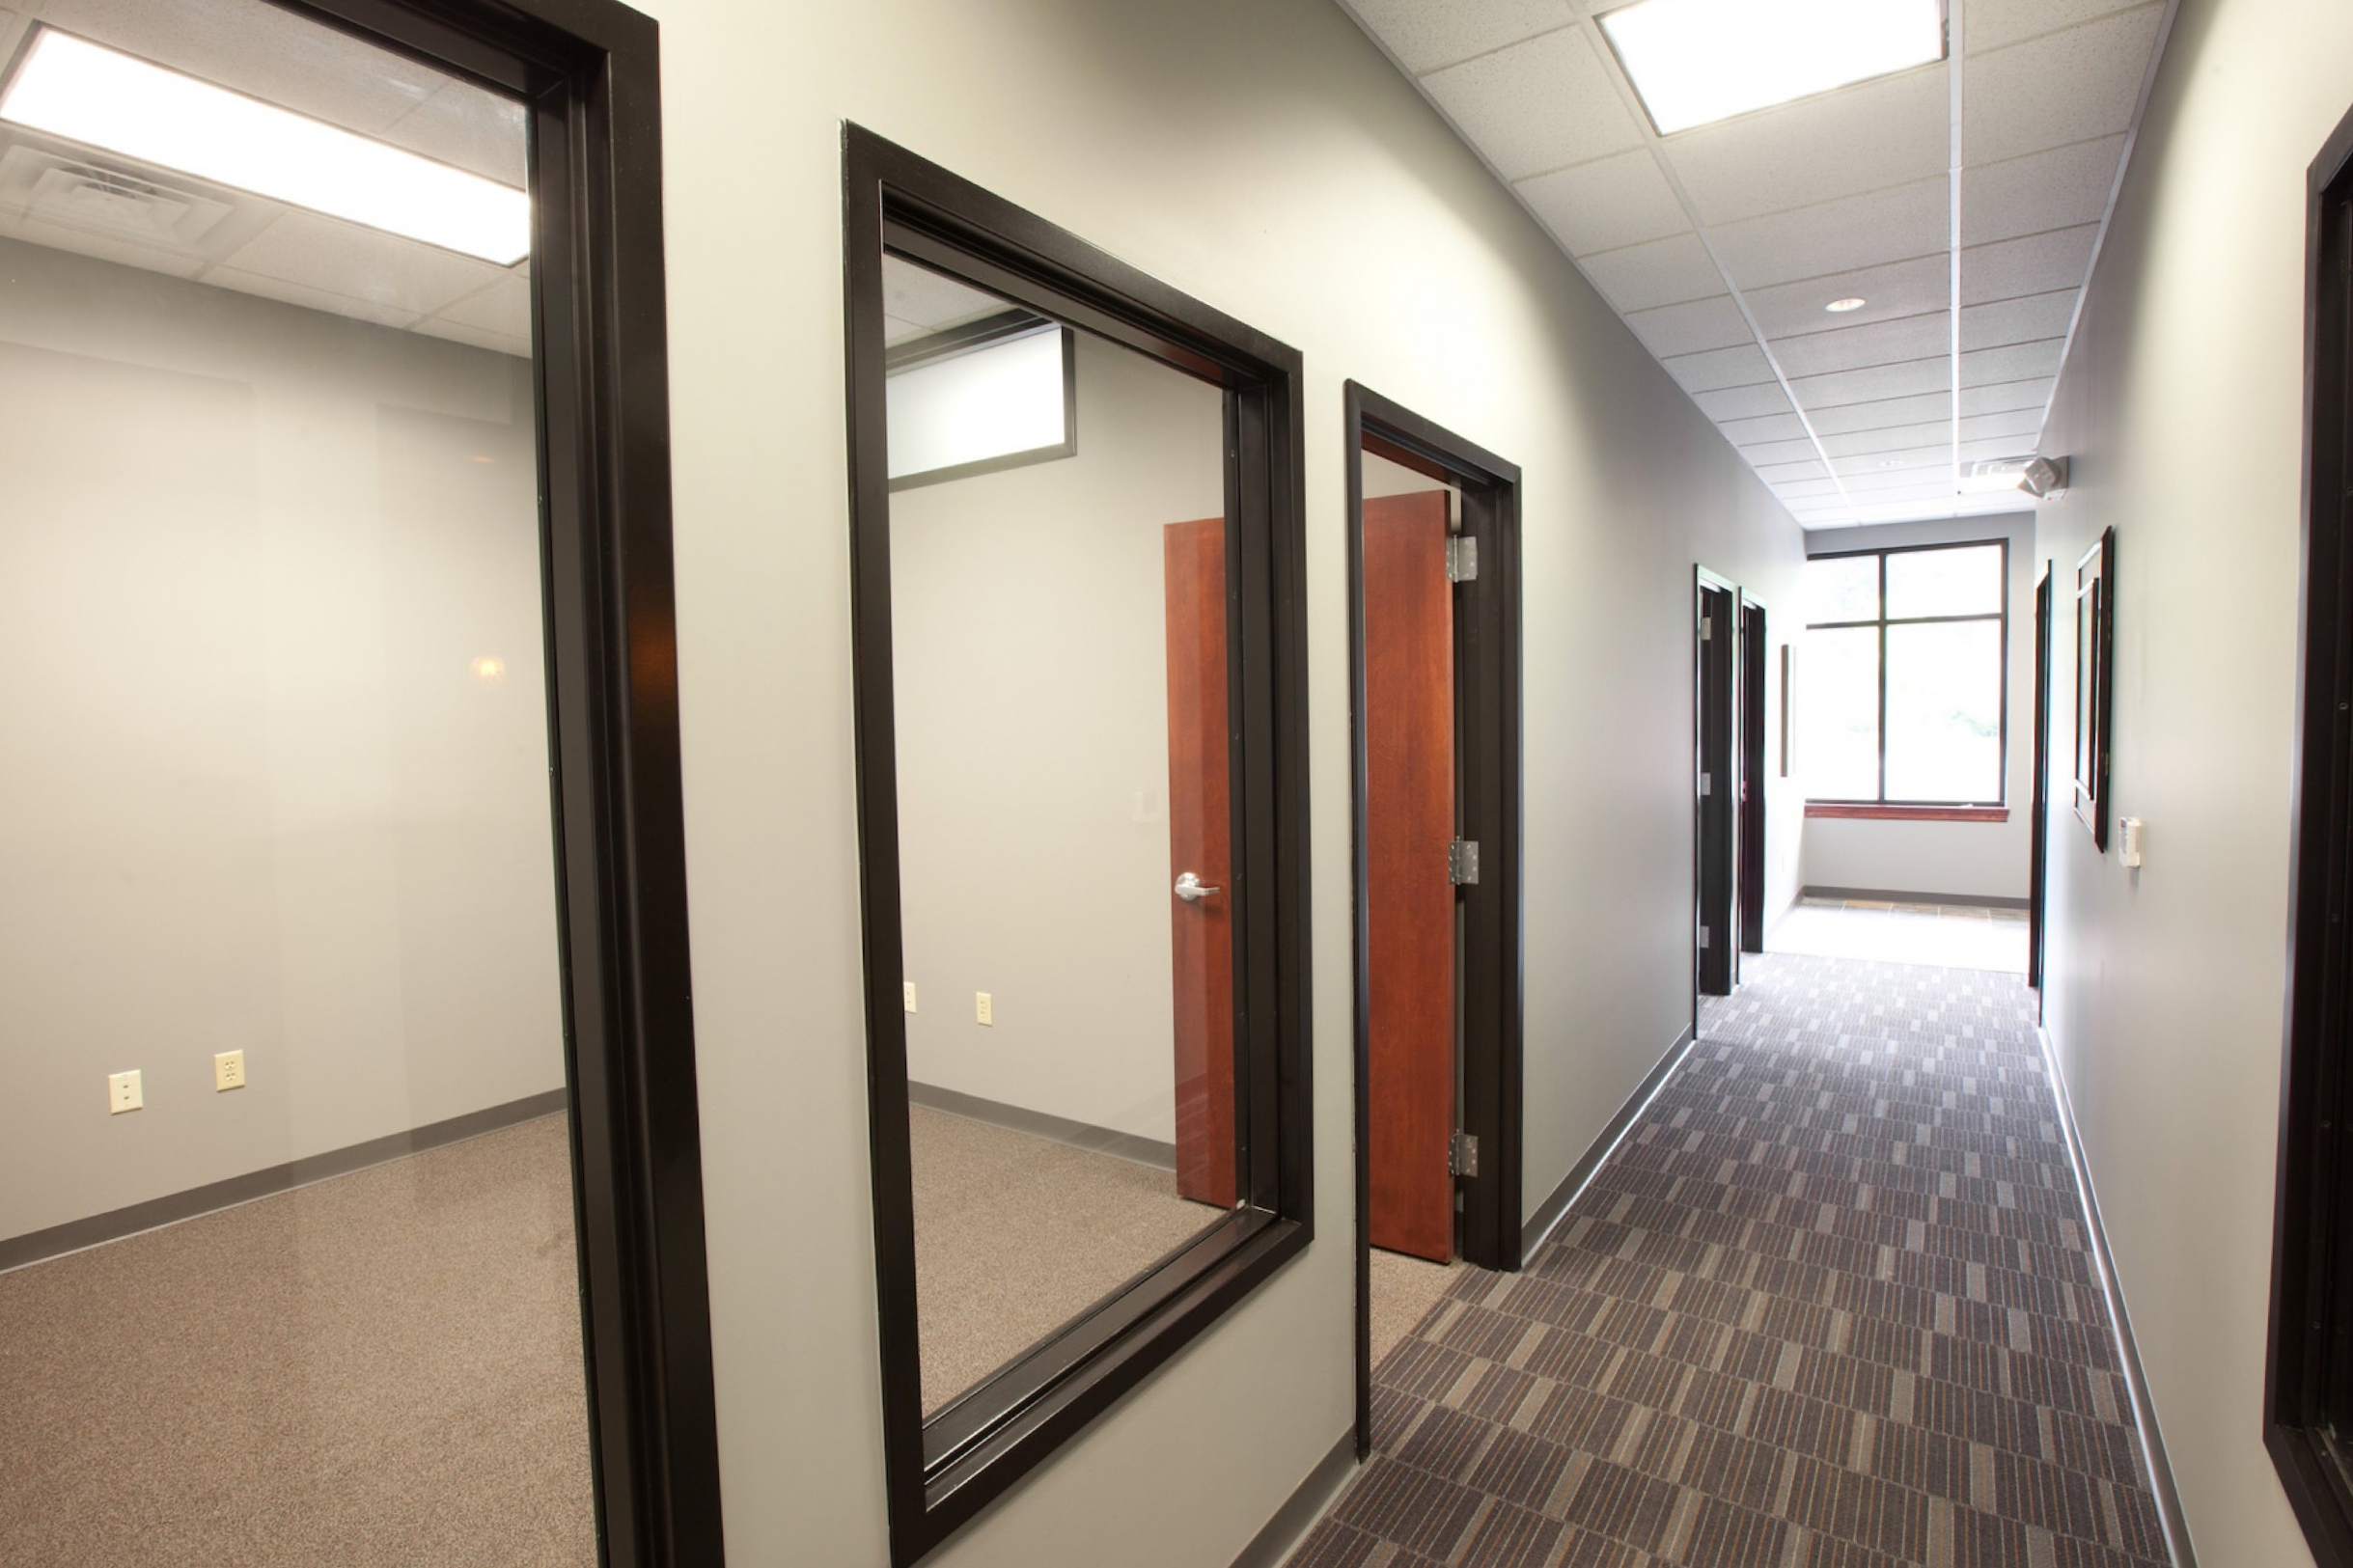 View of offices and hallway at West College office park